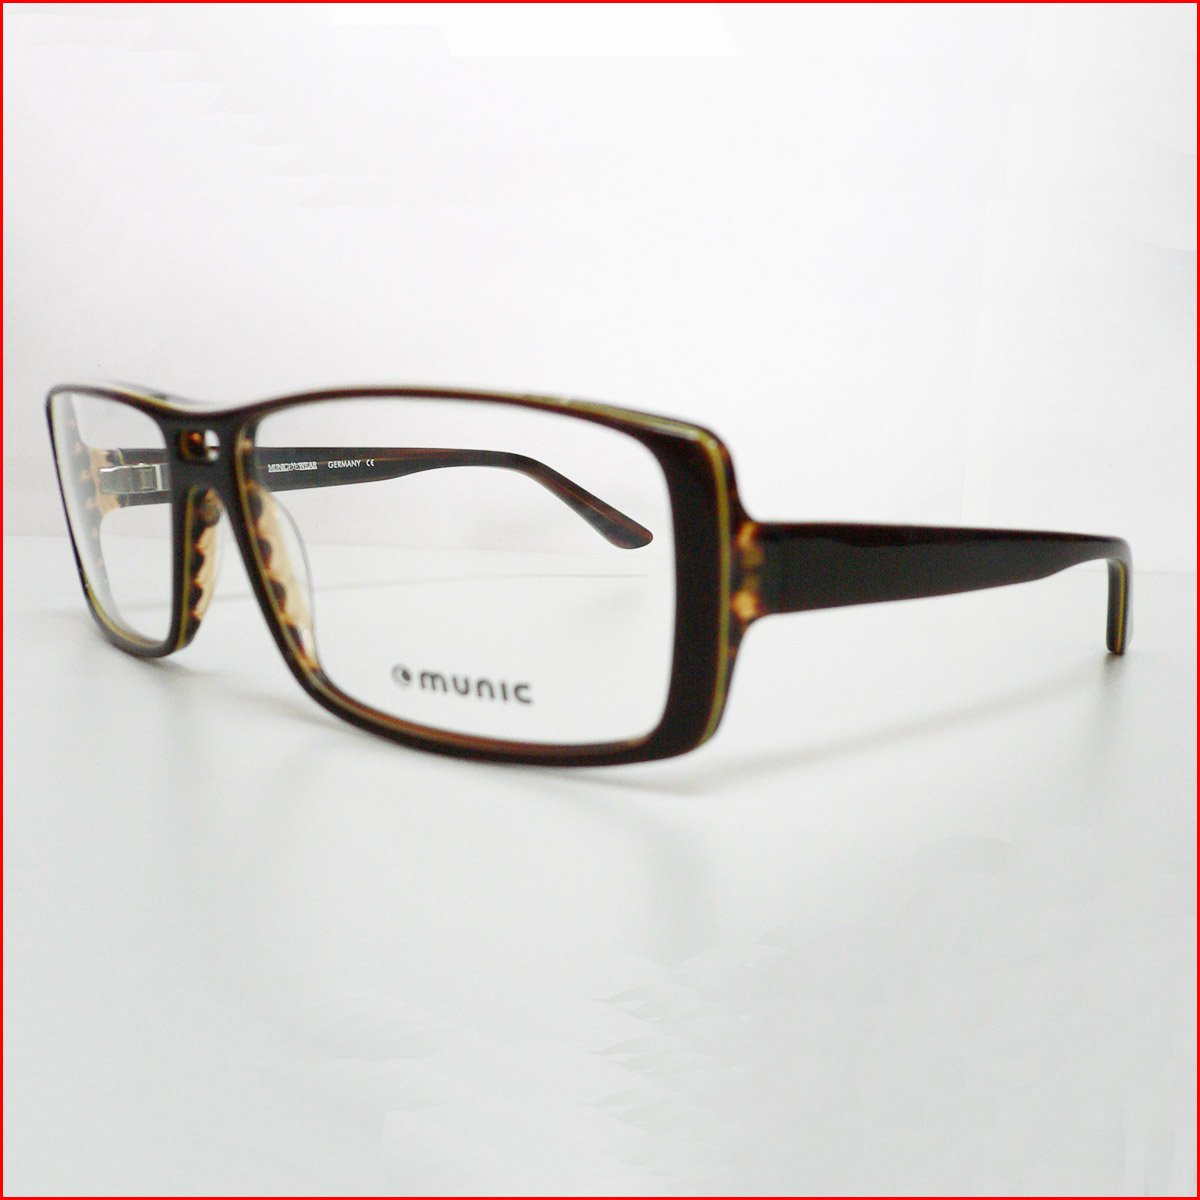 Glasses Frame Suppliers : Shenzhen Glasses Frames Manufacturers Supply Eyeglass ...